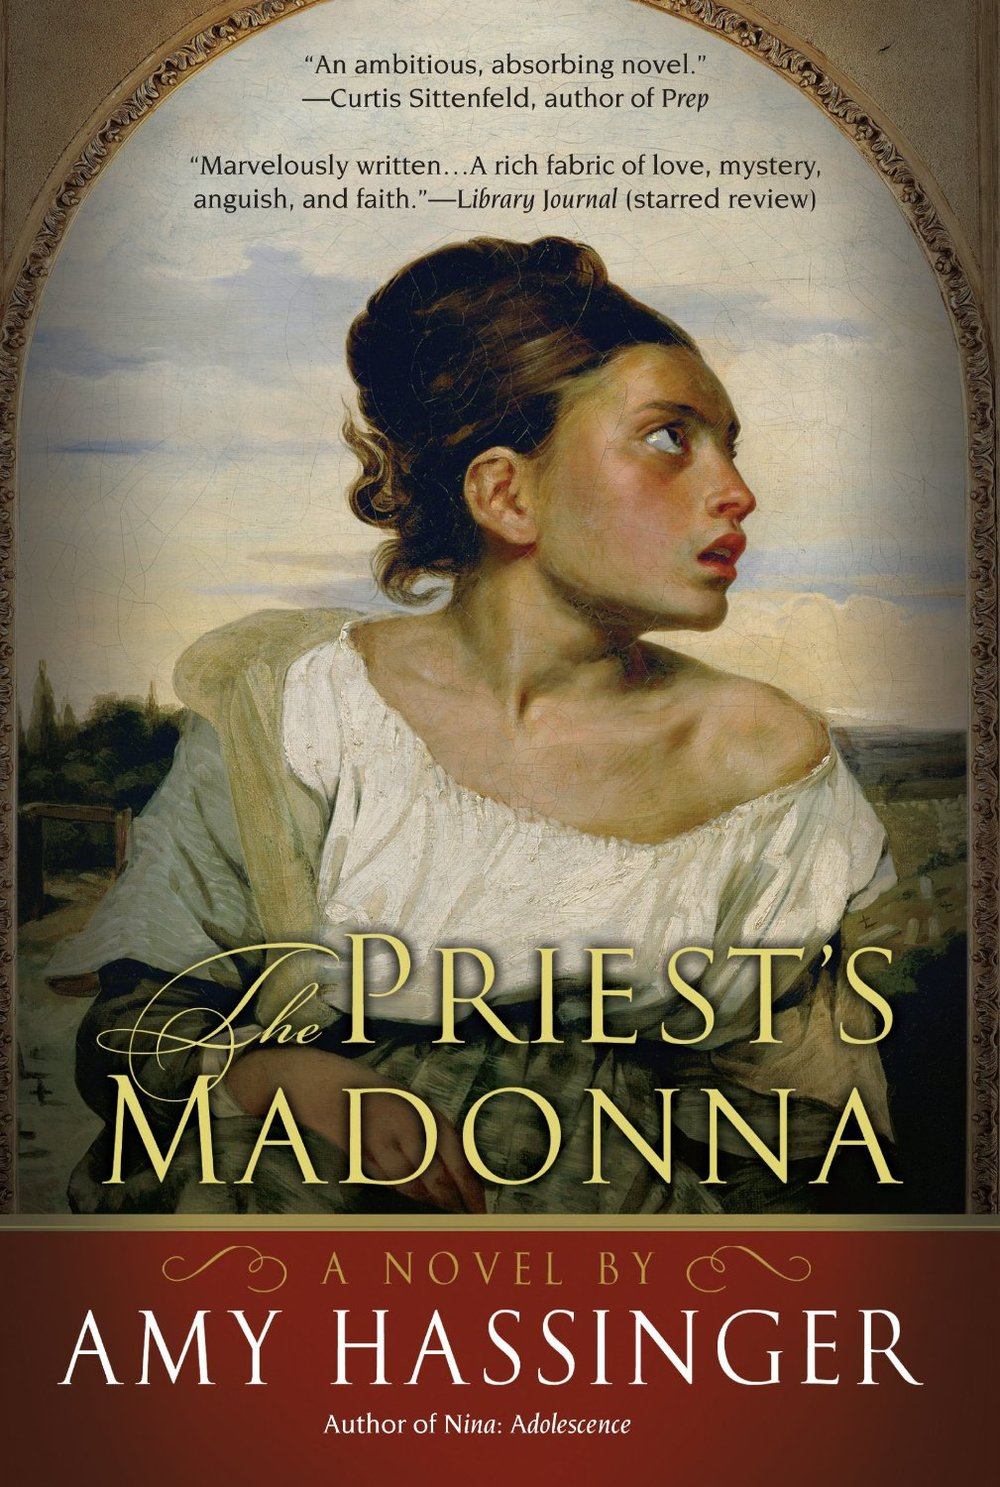 The Priest's Madonna